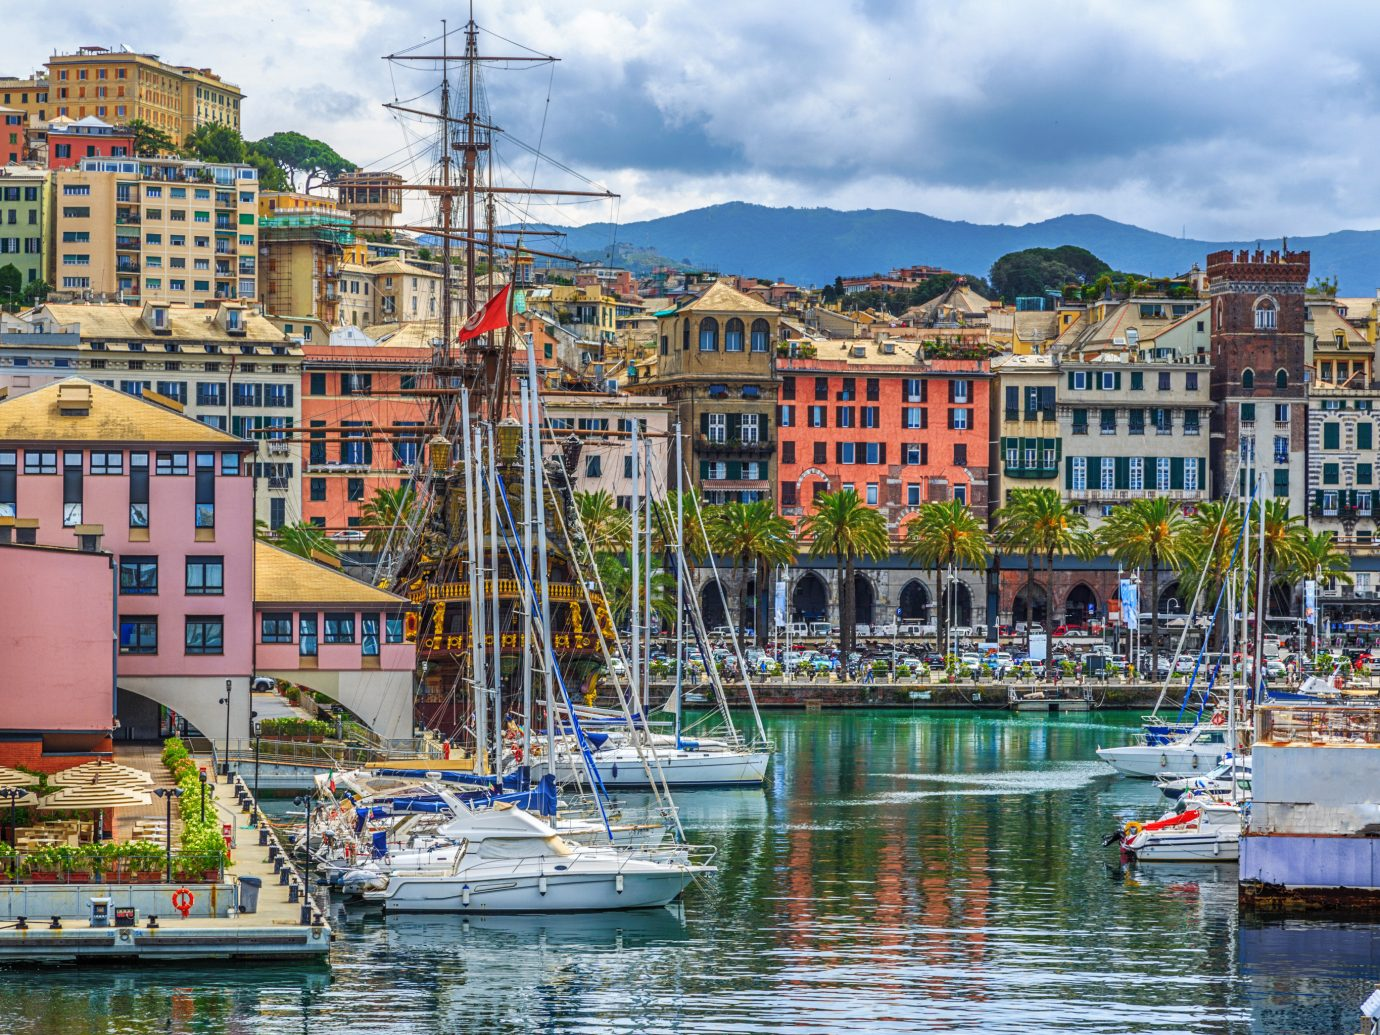 Italy Trip Ideas Harbor marina water waterway sky City reflection Town port Boat water transportation watercraft dock Sea cityscape channel mixed use tourism tree facade